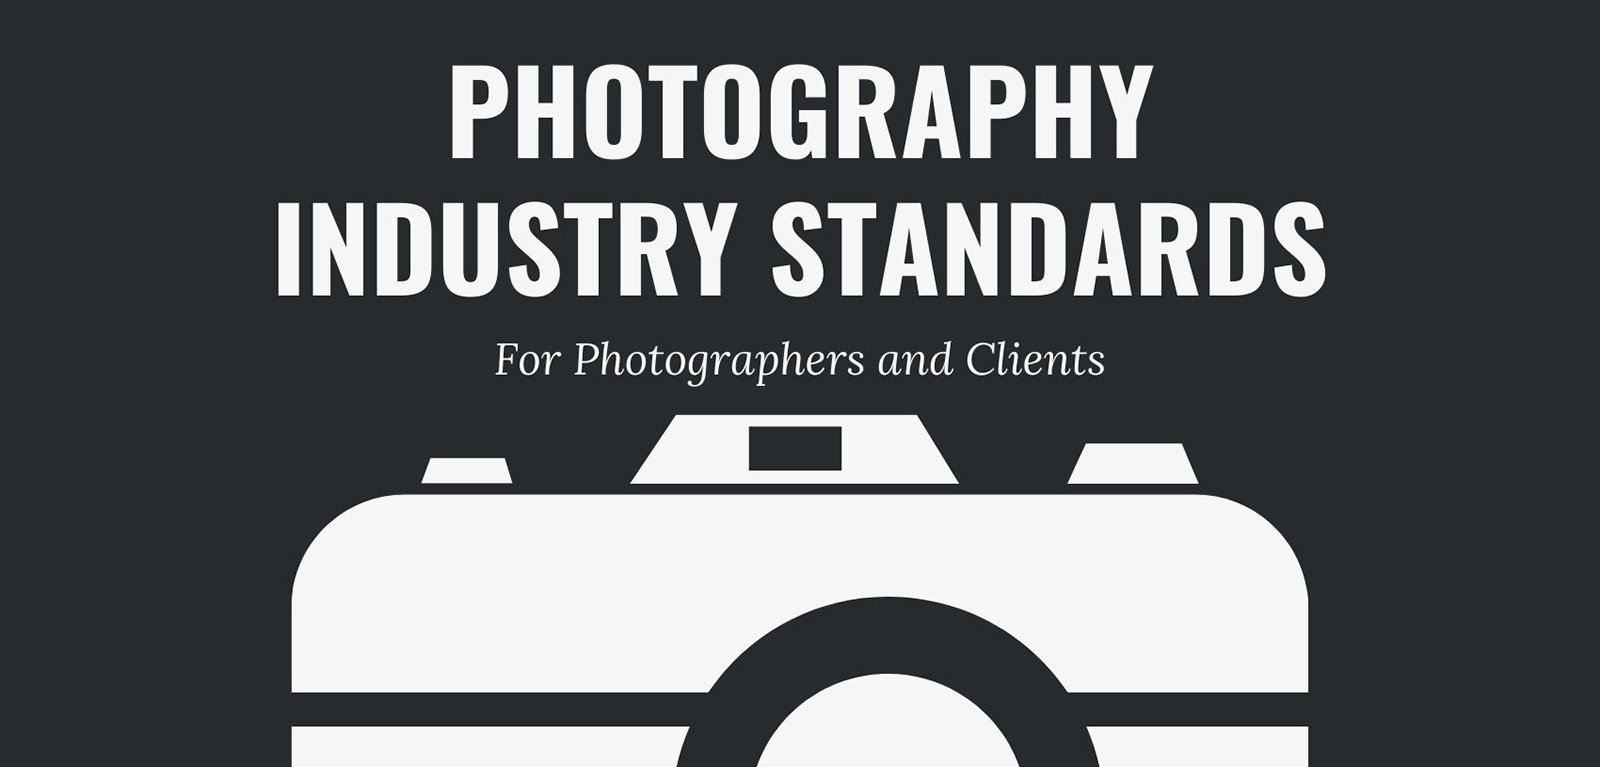 Guide to Industry Standards for Professional Photographers and Their Clients